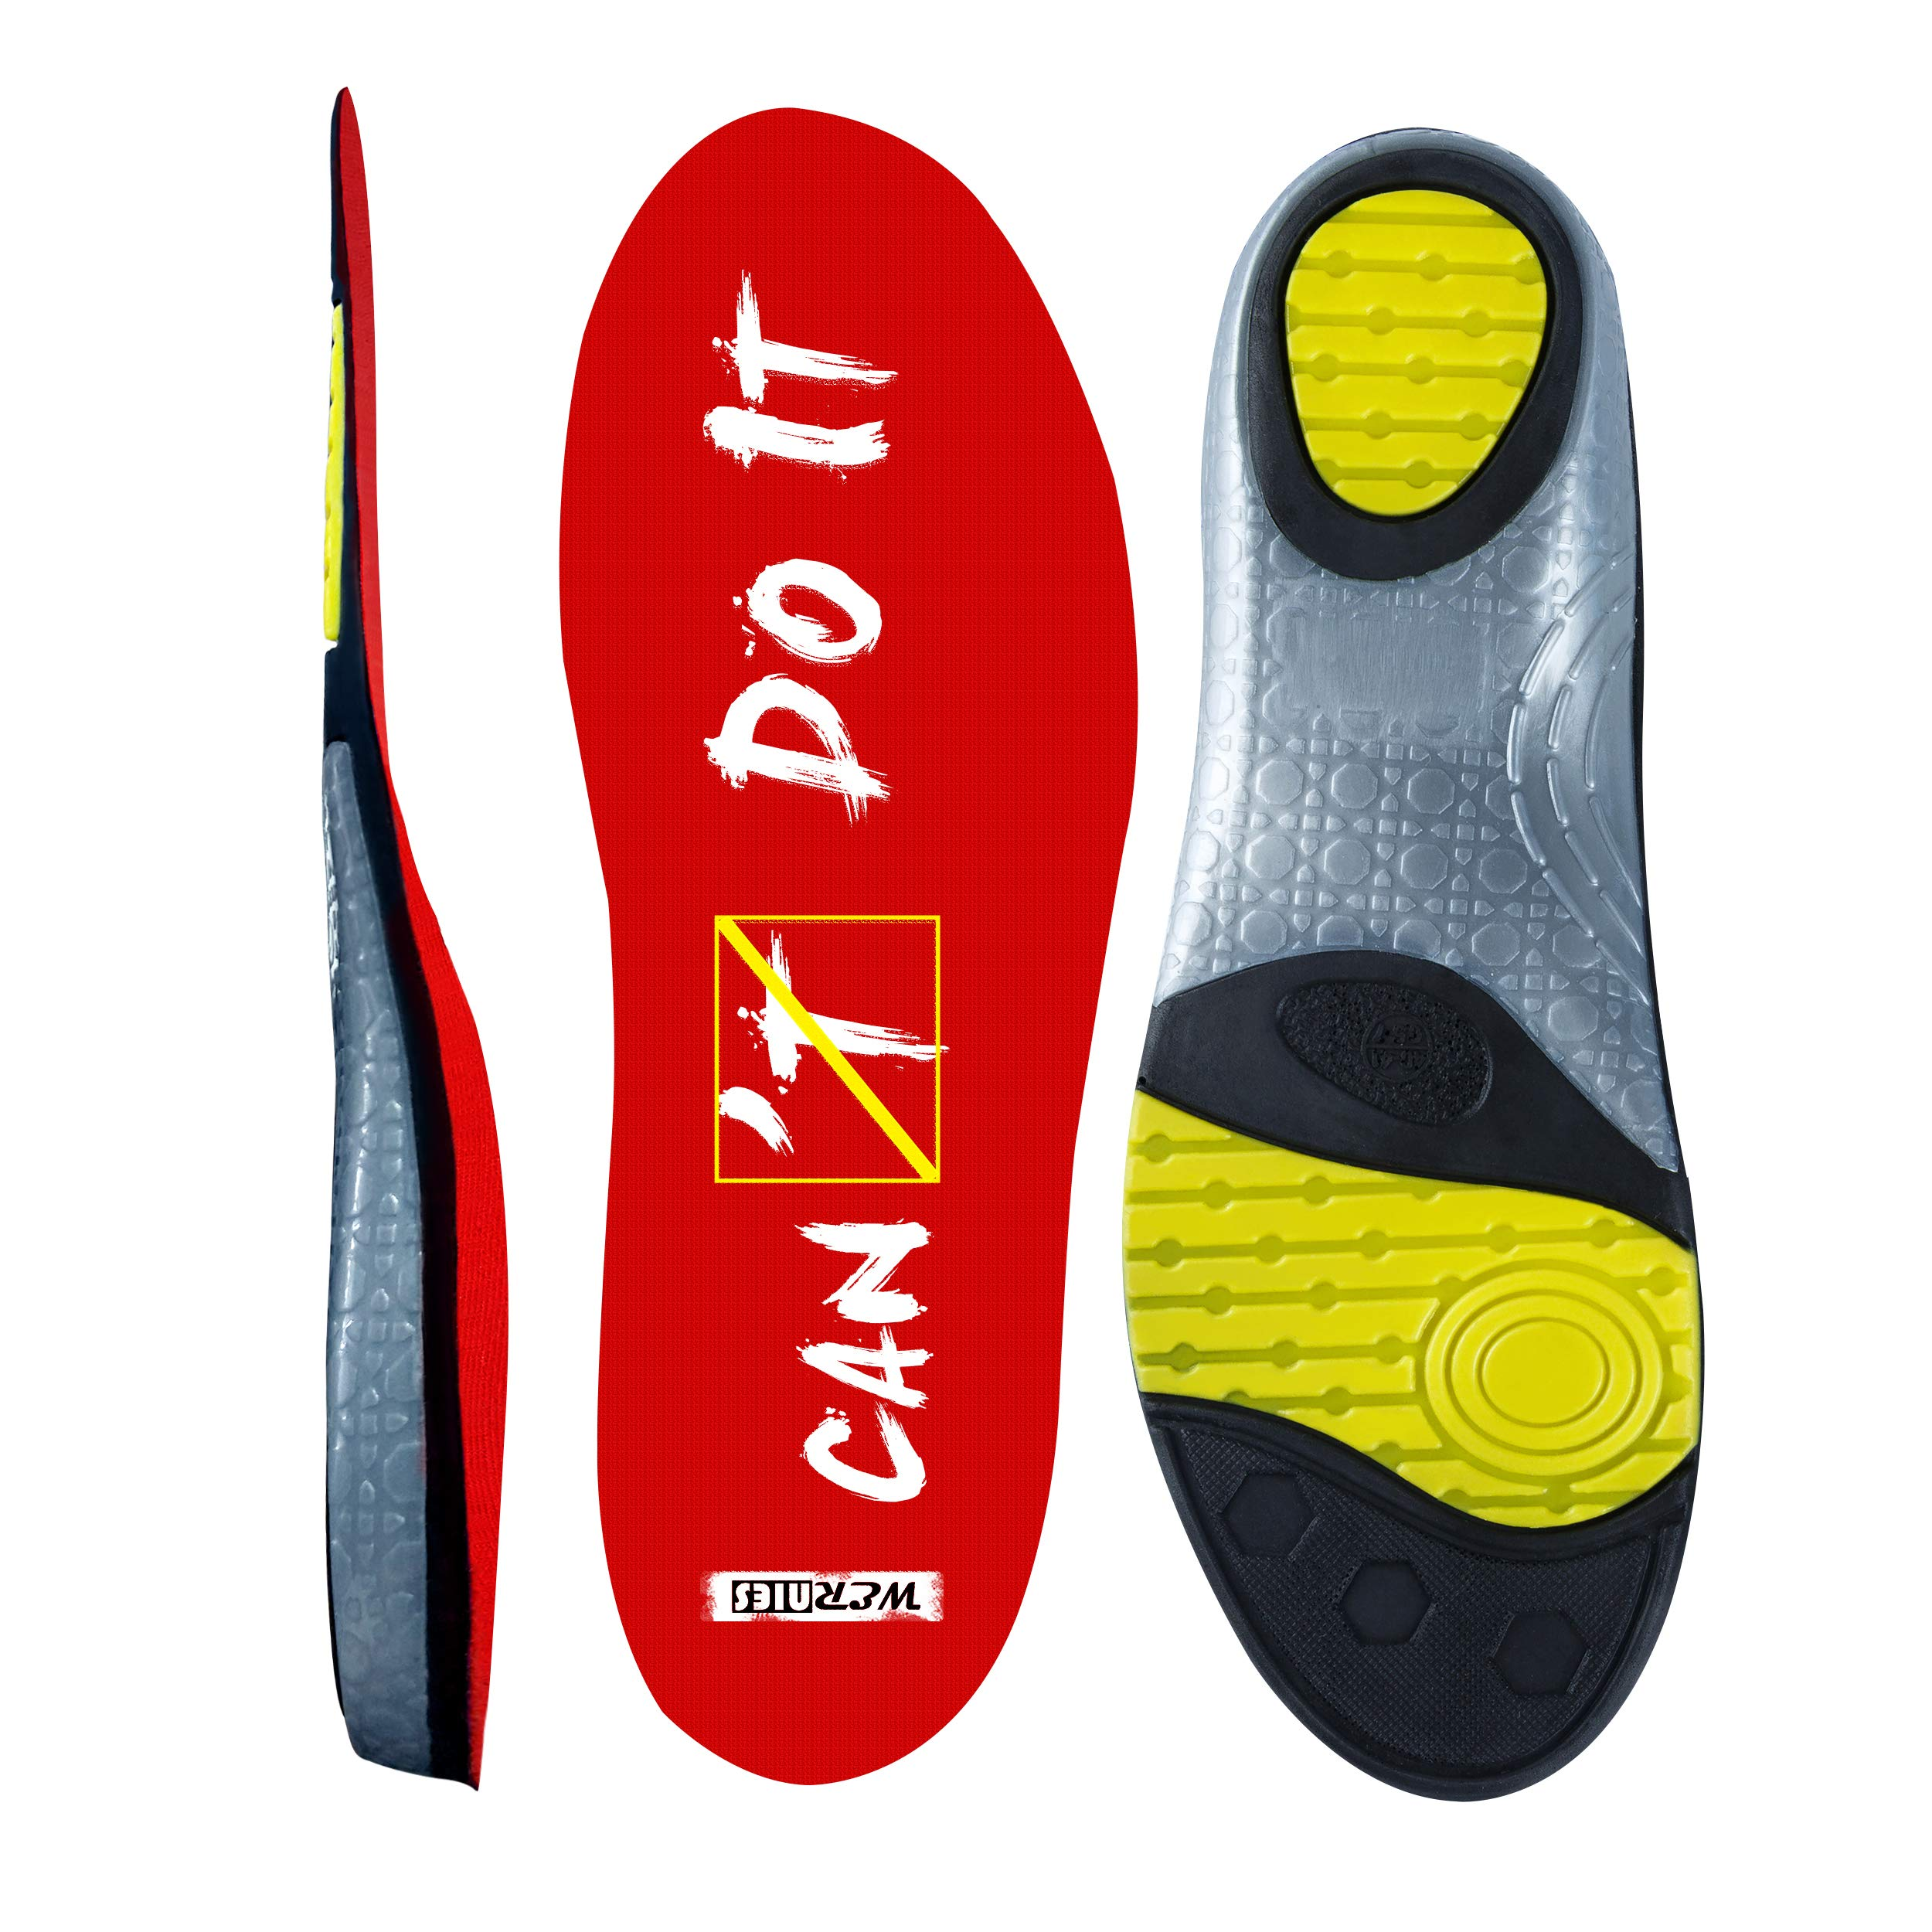 wernies Running Shoe Insoles for Women Neutral Arch Support Insert Replacement Sports Shoe Inserts for Men Plantar Fasciitis Inserts Flat Feet Insoles for Mens Work Insoles for Men, Sneaker Insert